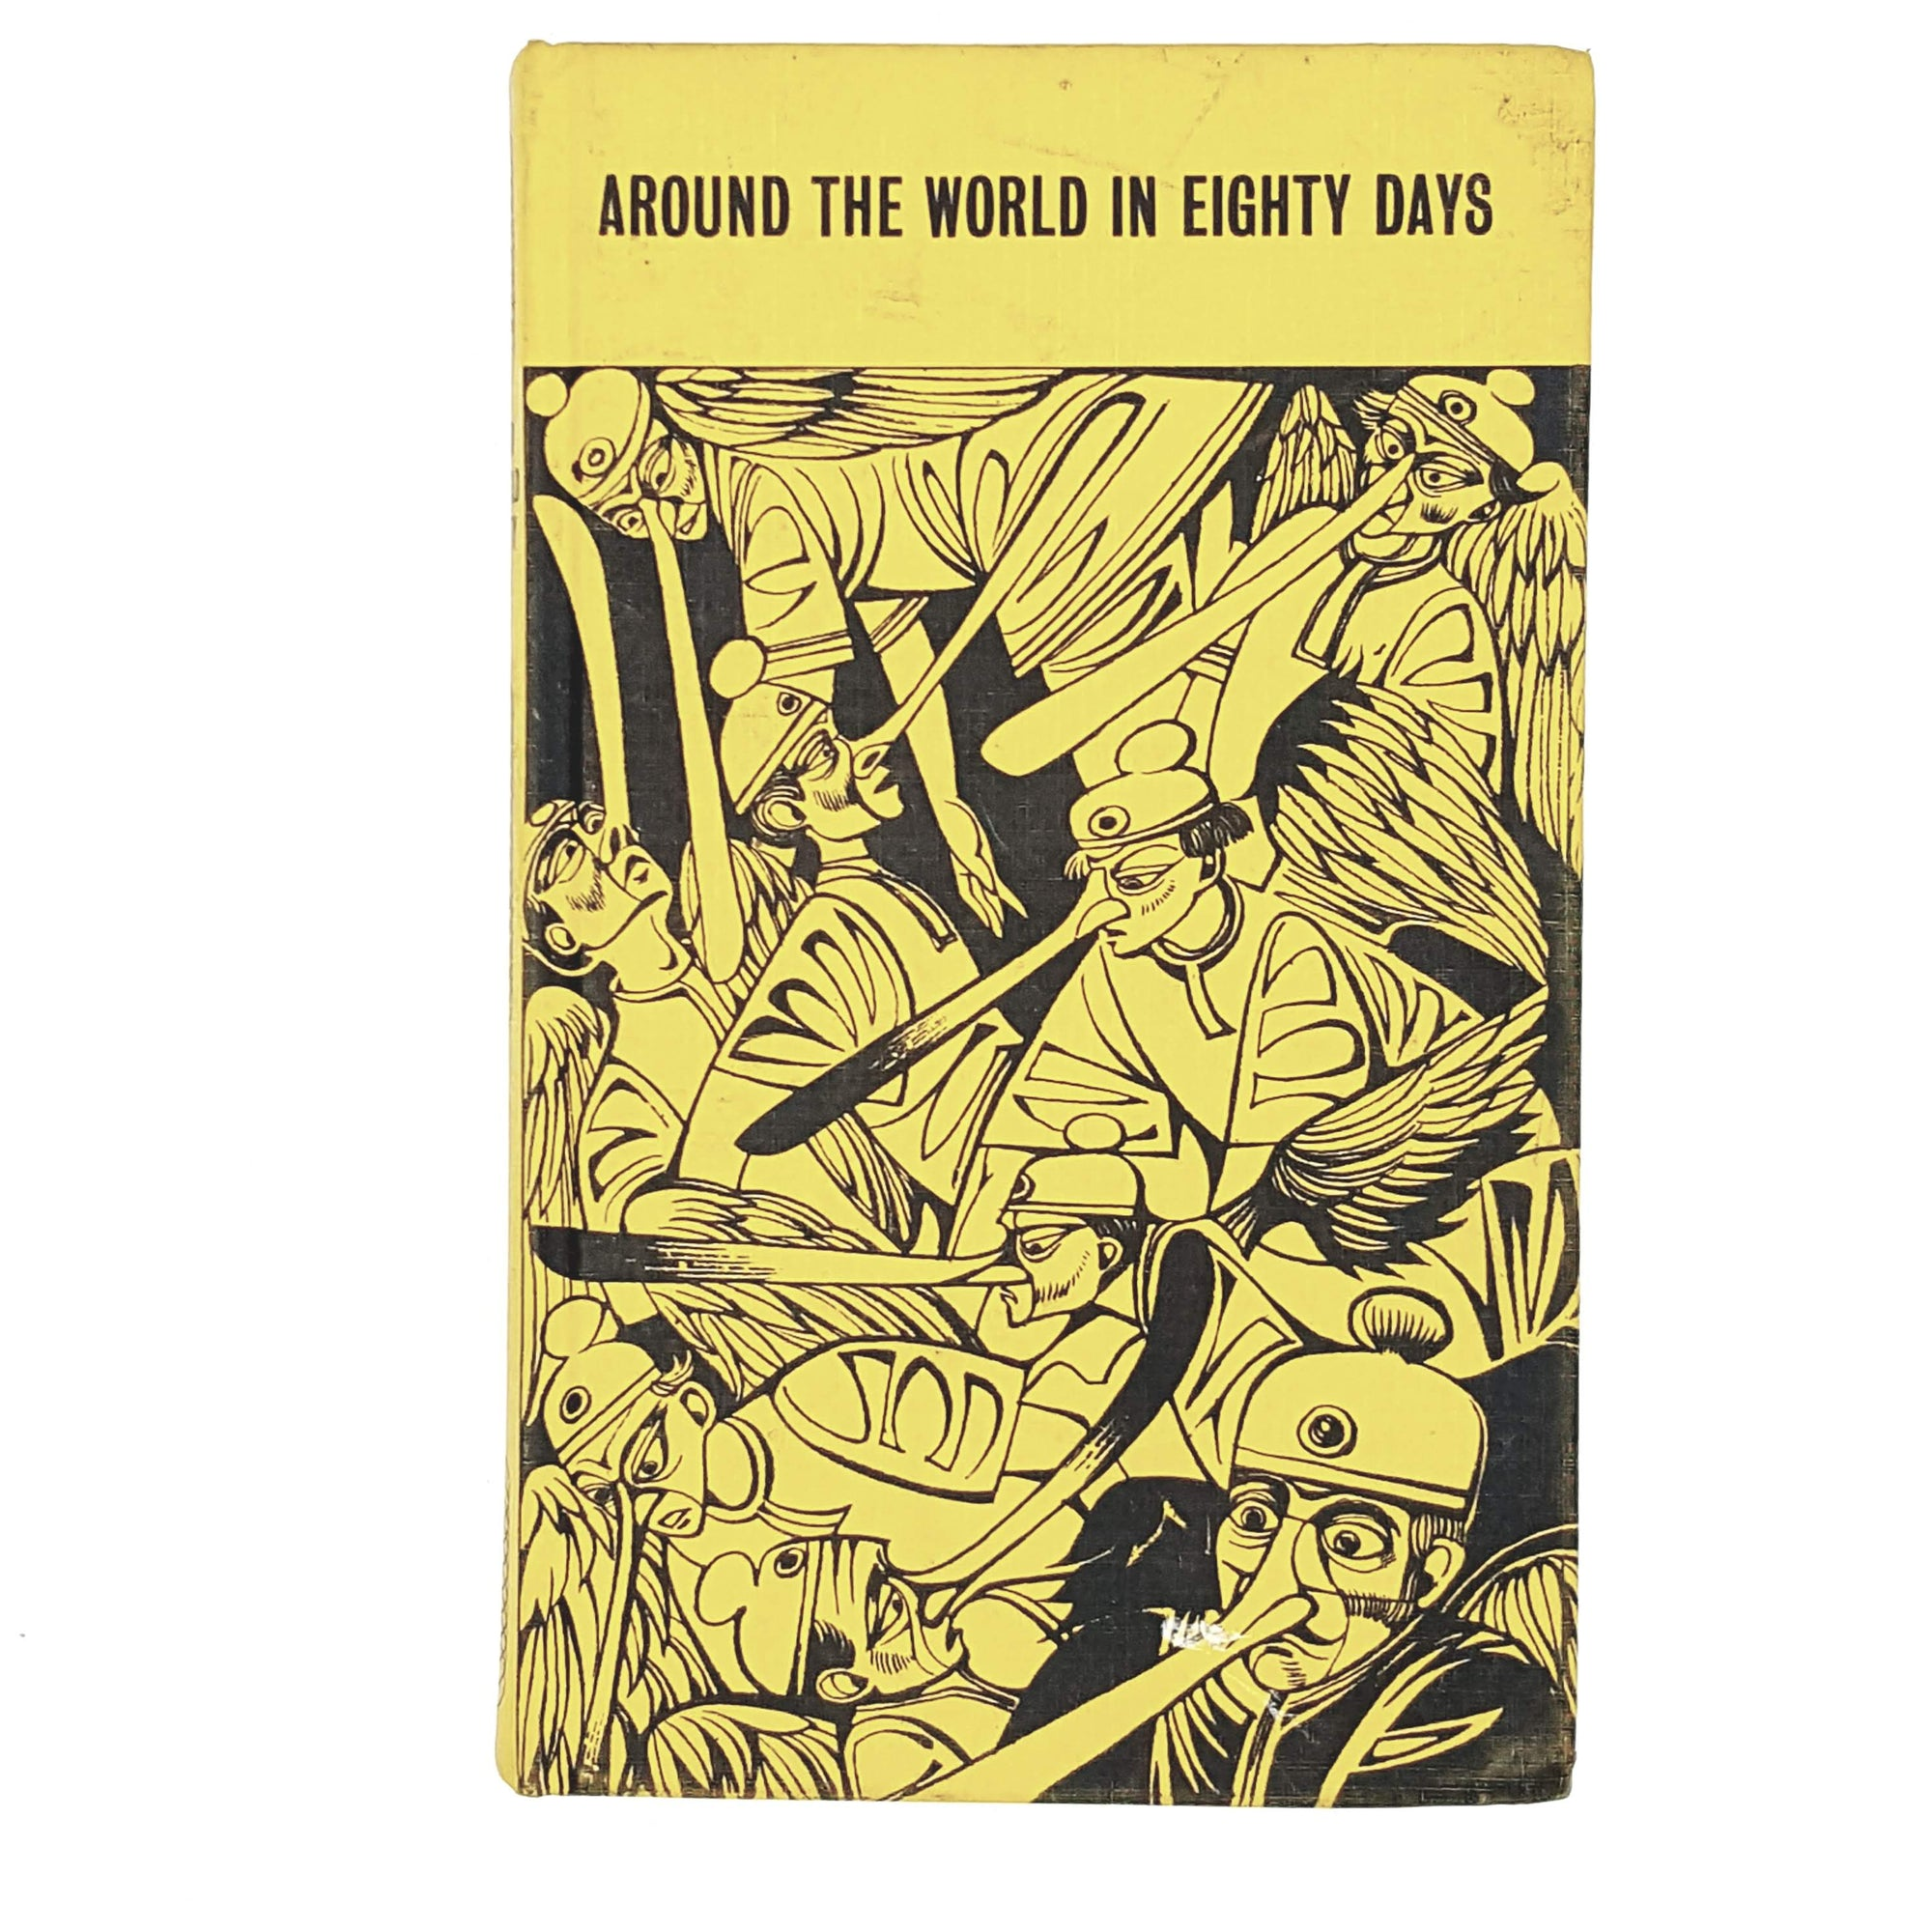 Around the World in Eighty Days by Jules Verne 1967